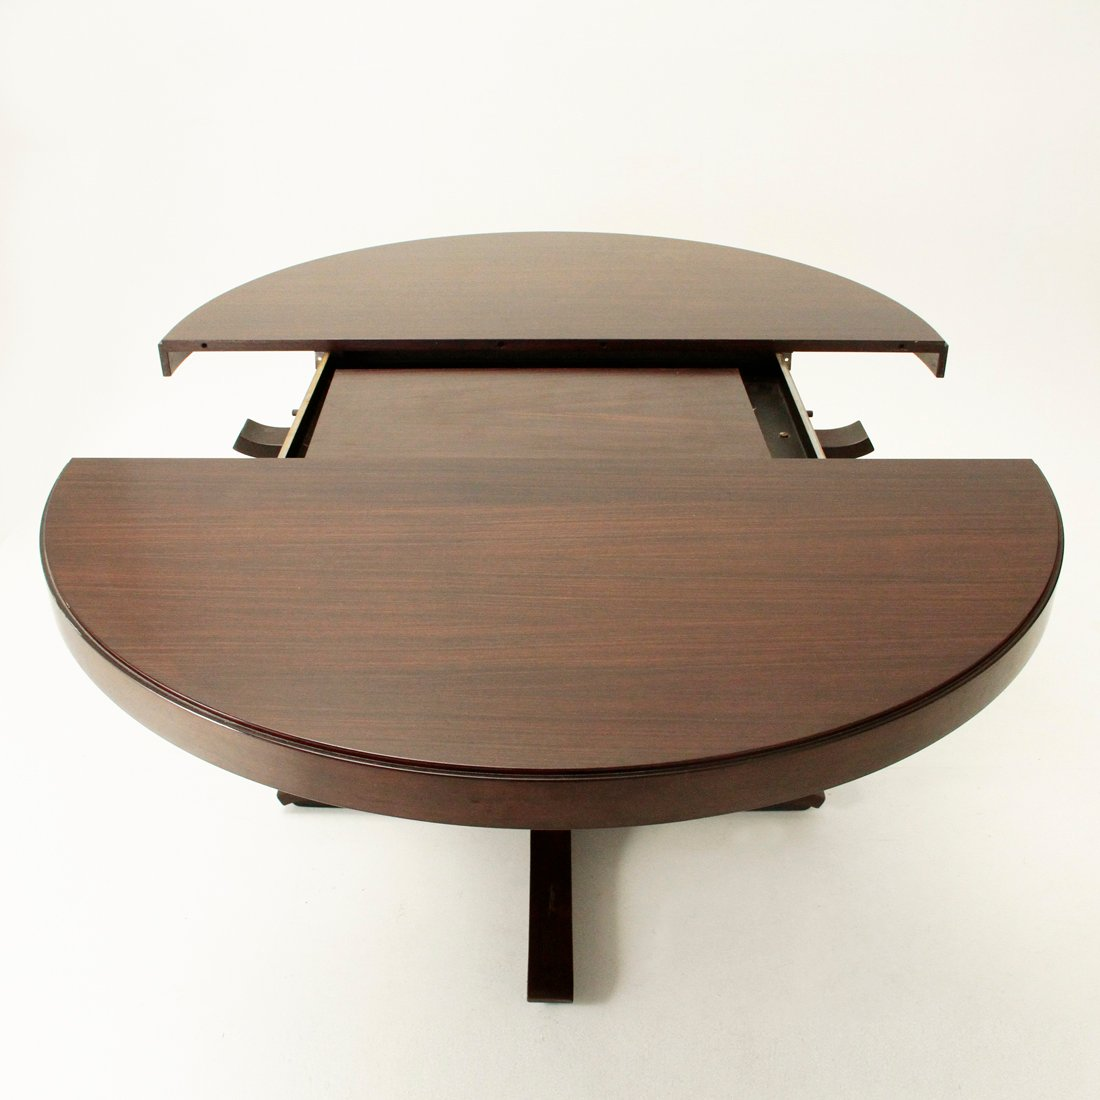 Extensible dining table by giovanni ausenda for stilwood for Table extensible keneah